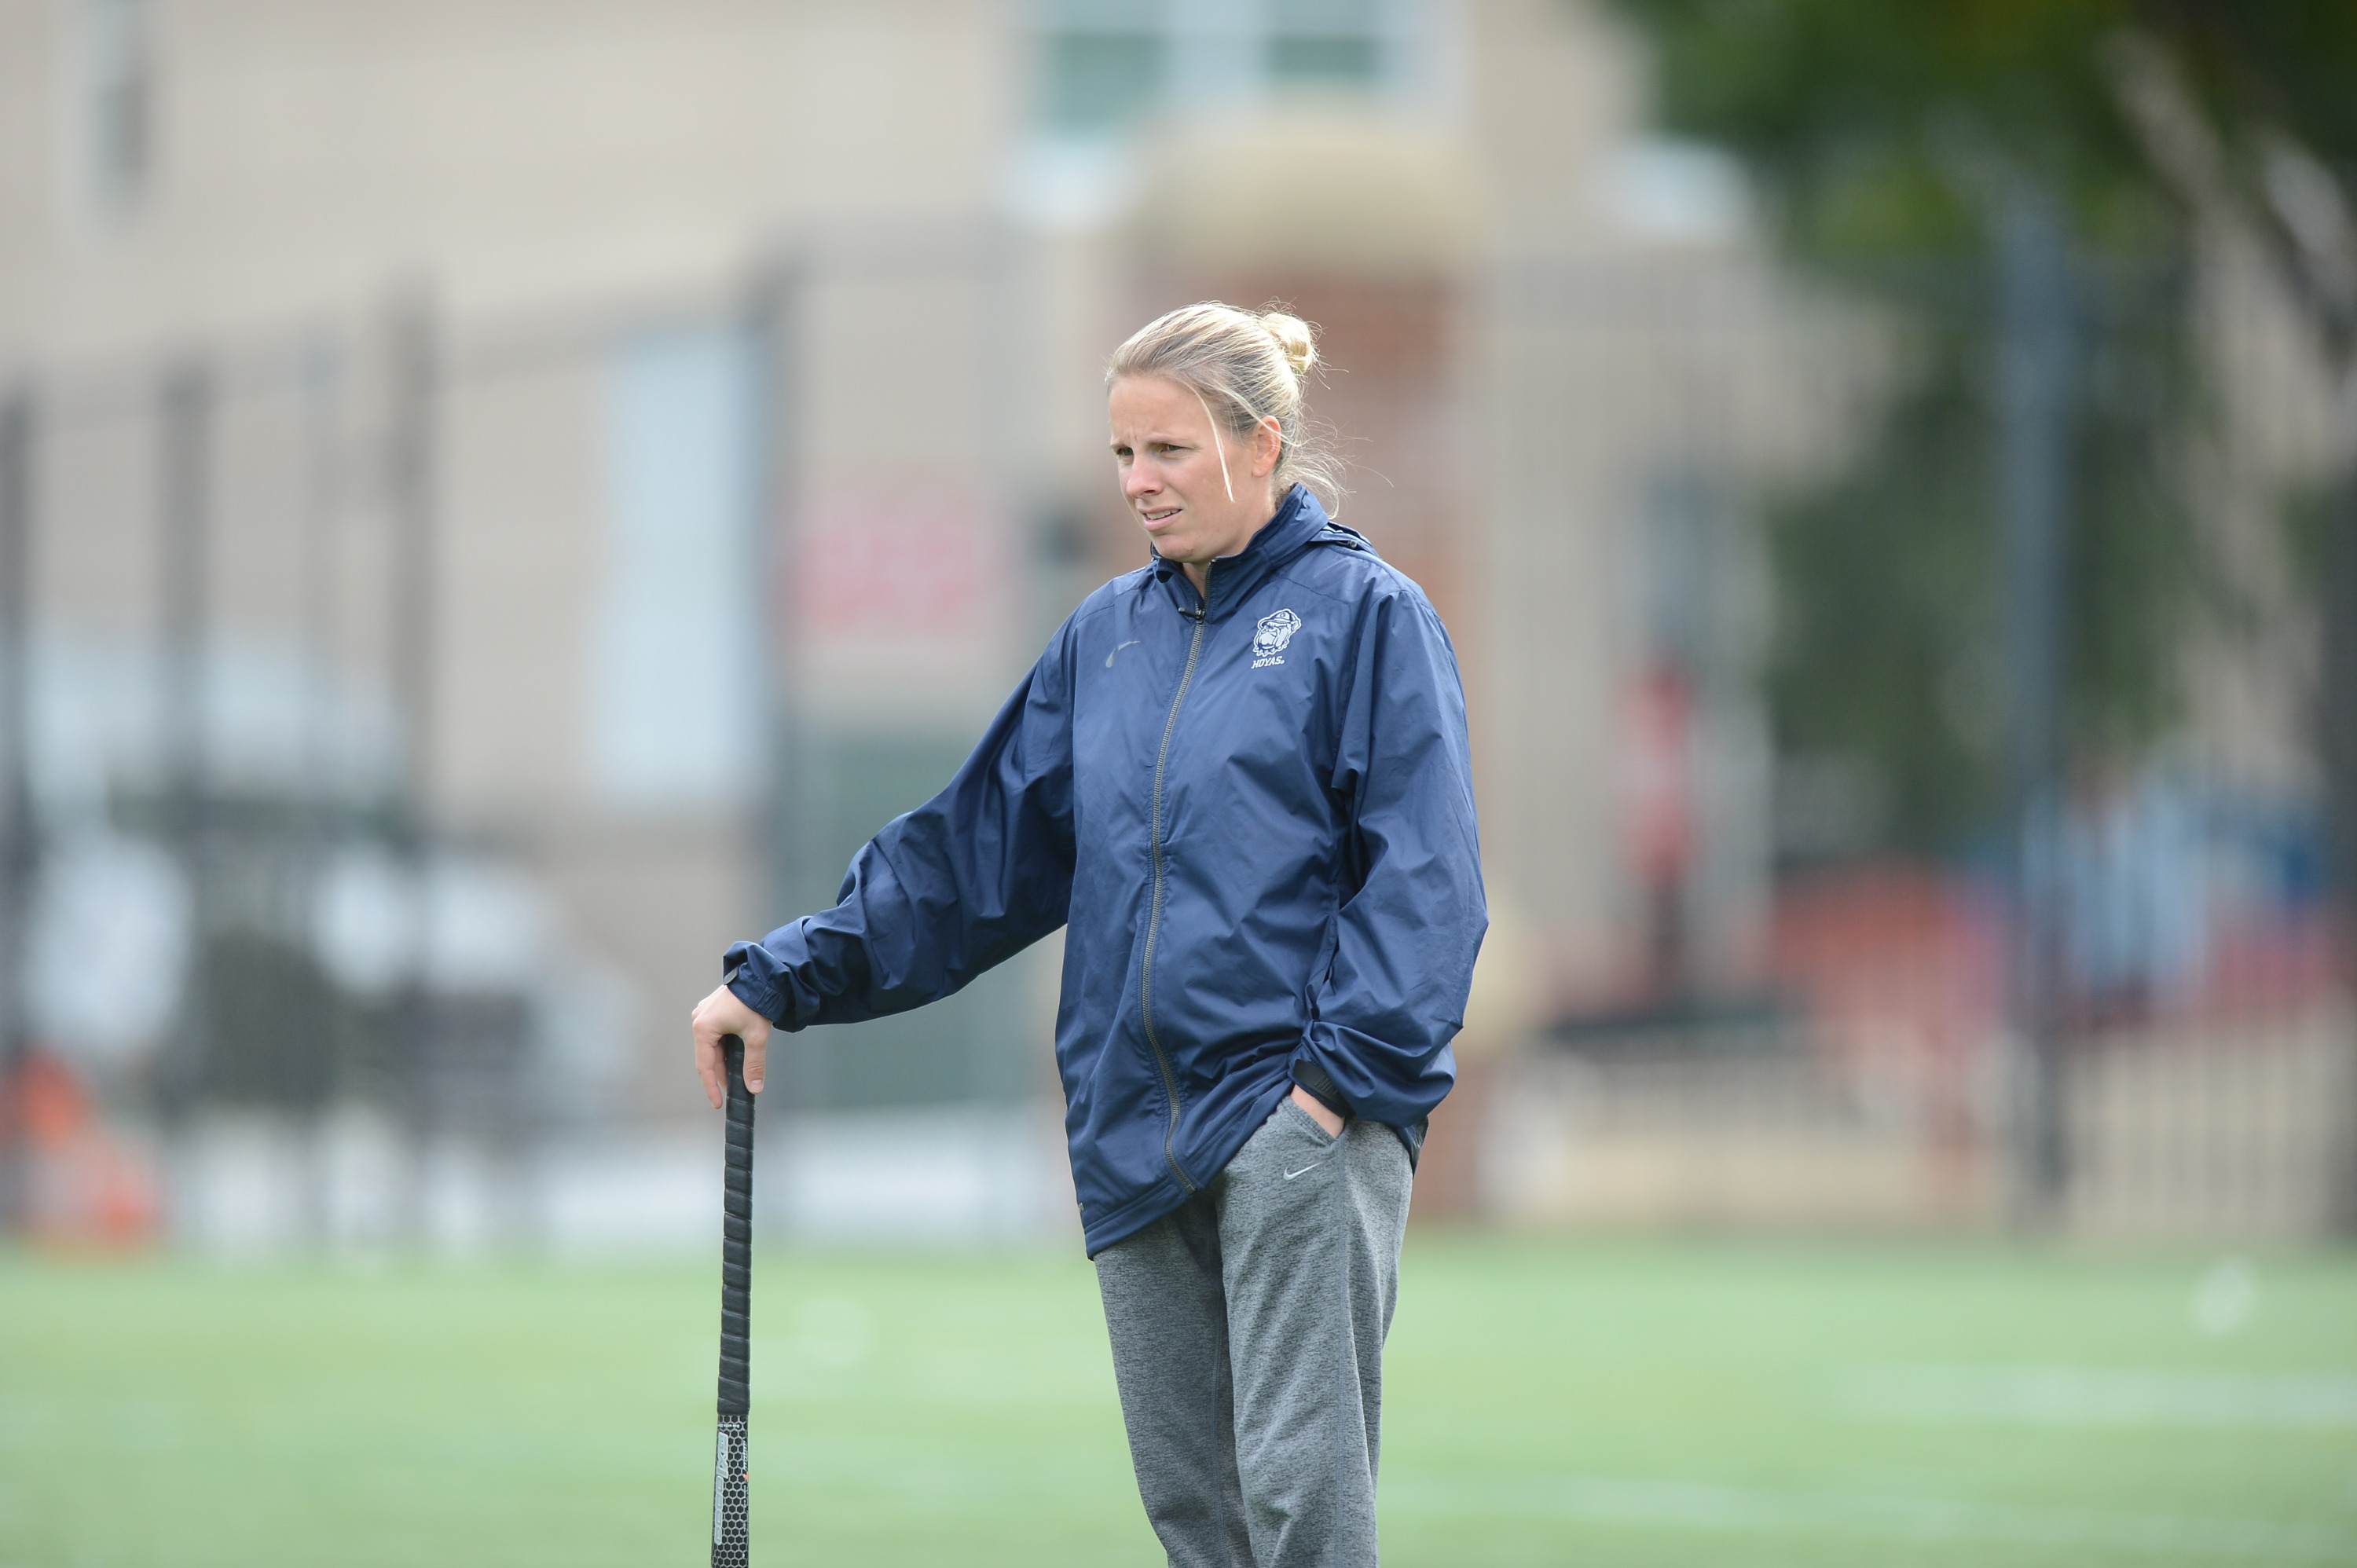 <b> The GU field hockey team was recognized for its work in the classroom on Monday by the NFHCA.</b>